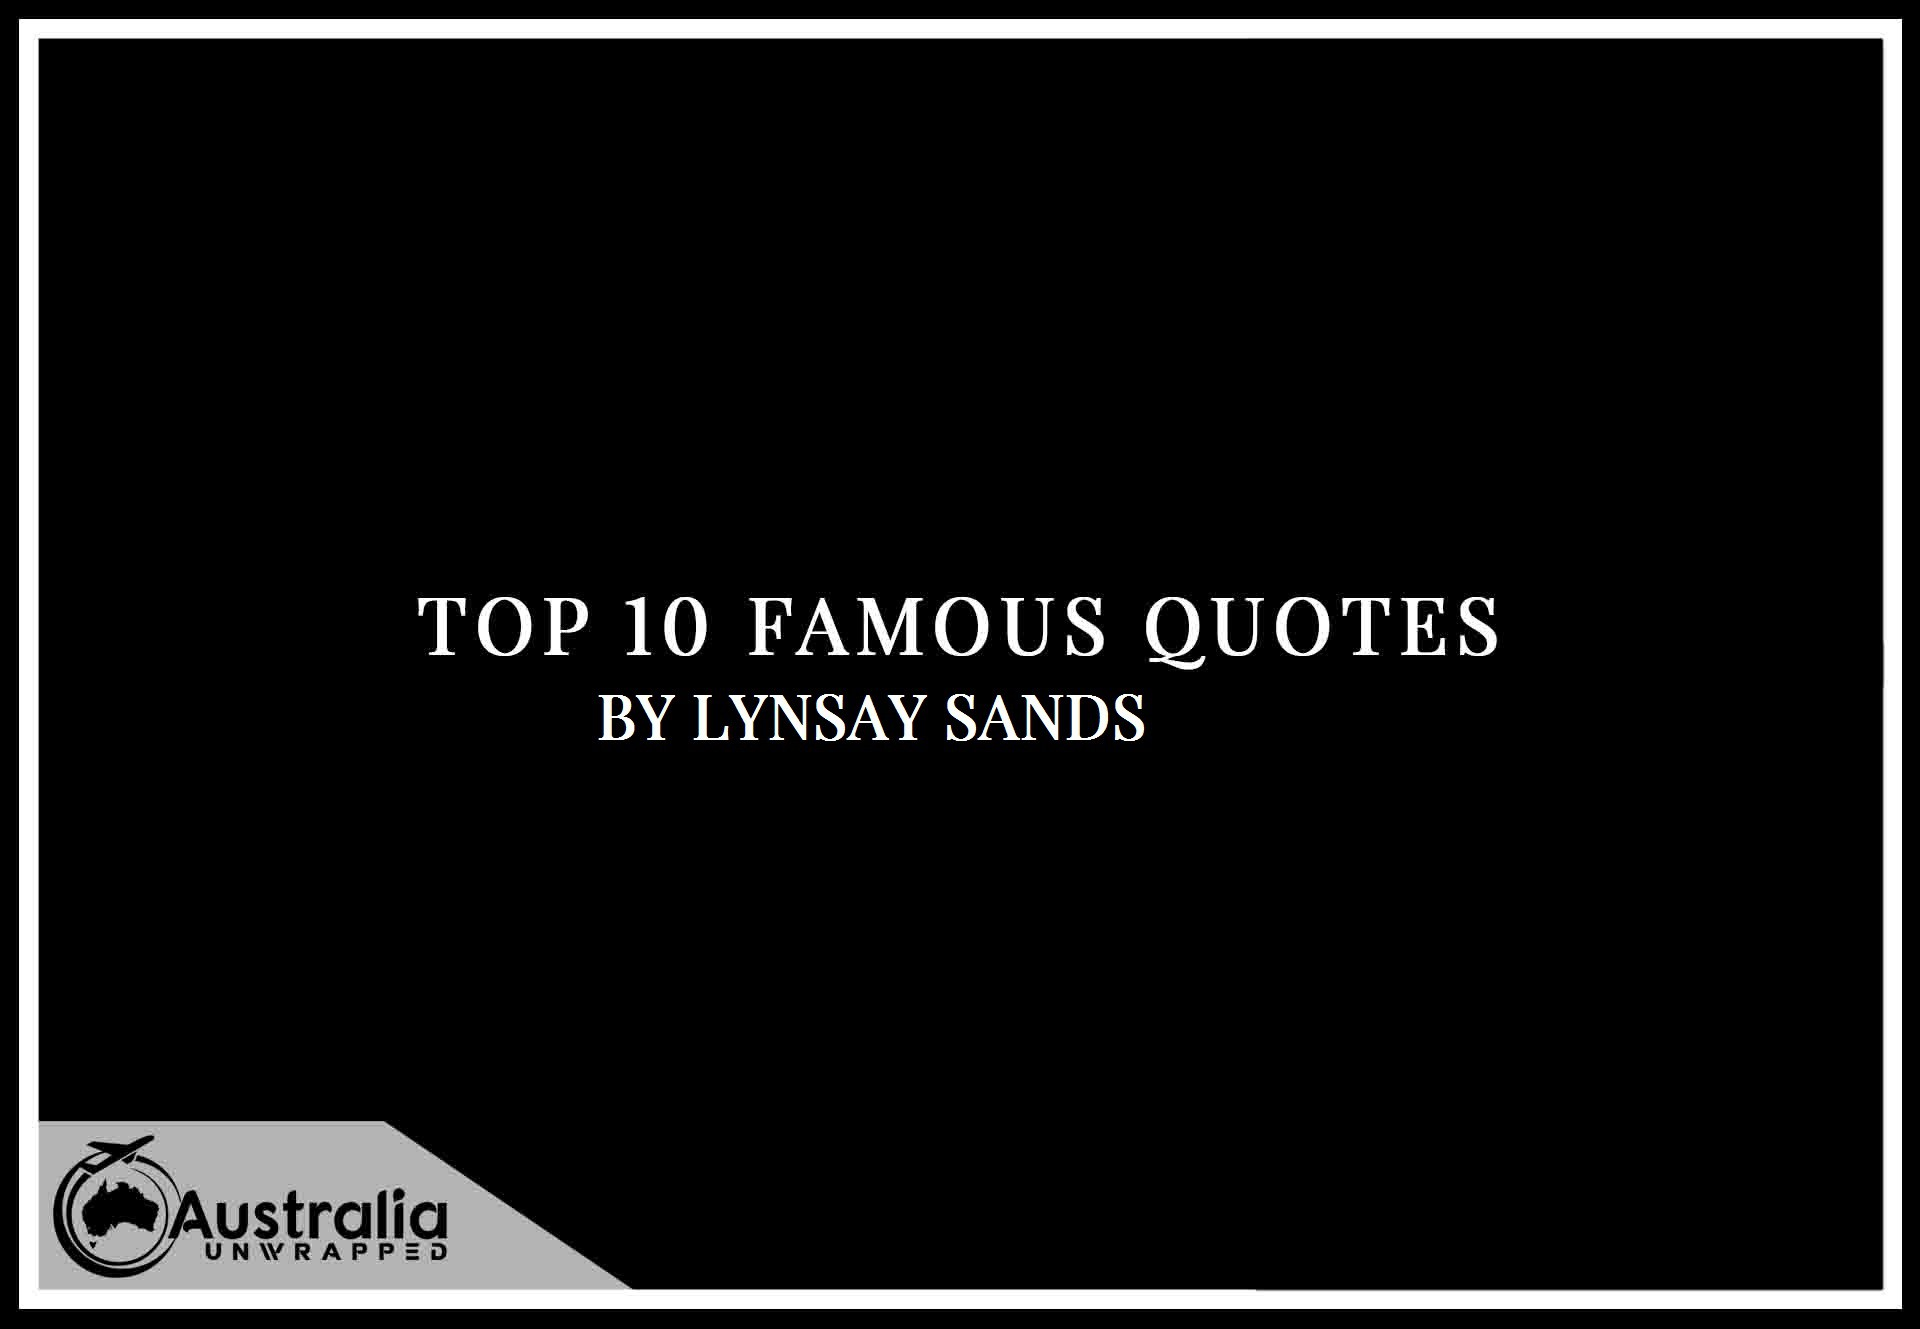 Lynsay Sands's Top 10 Popular and Famous Quotes